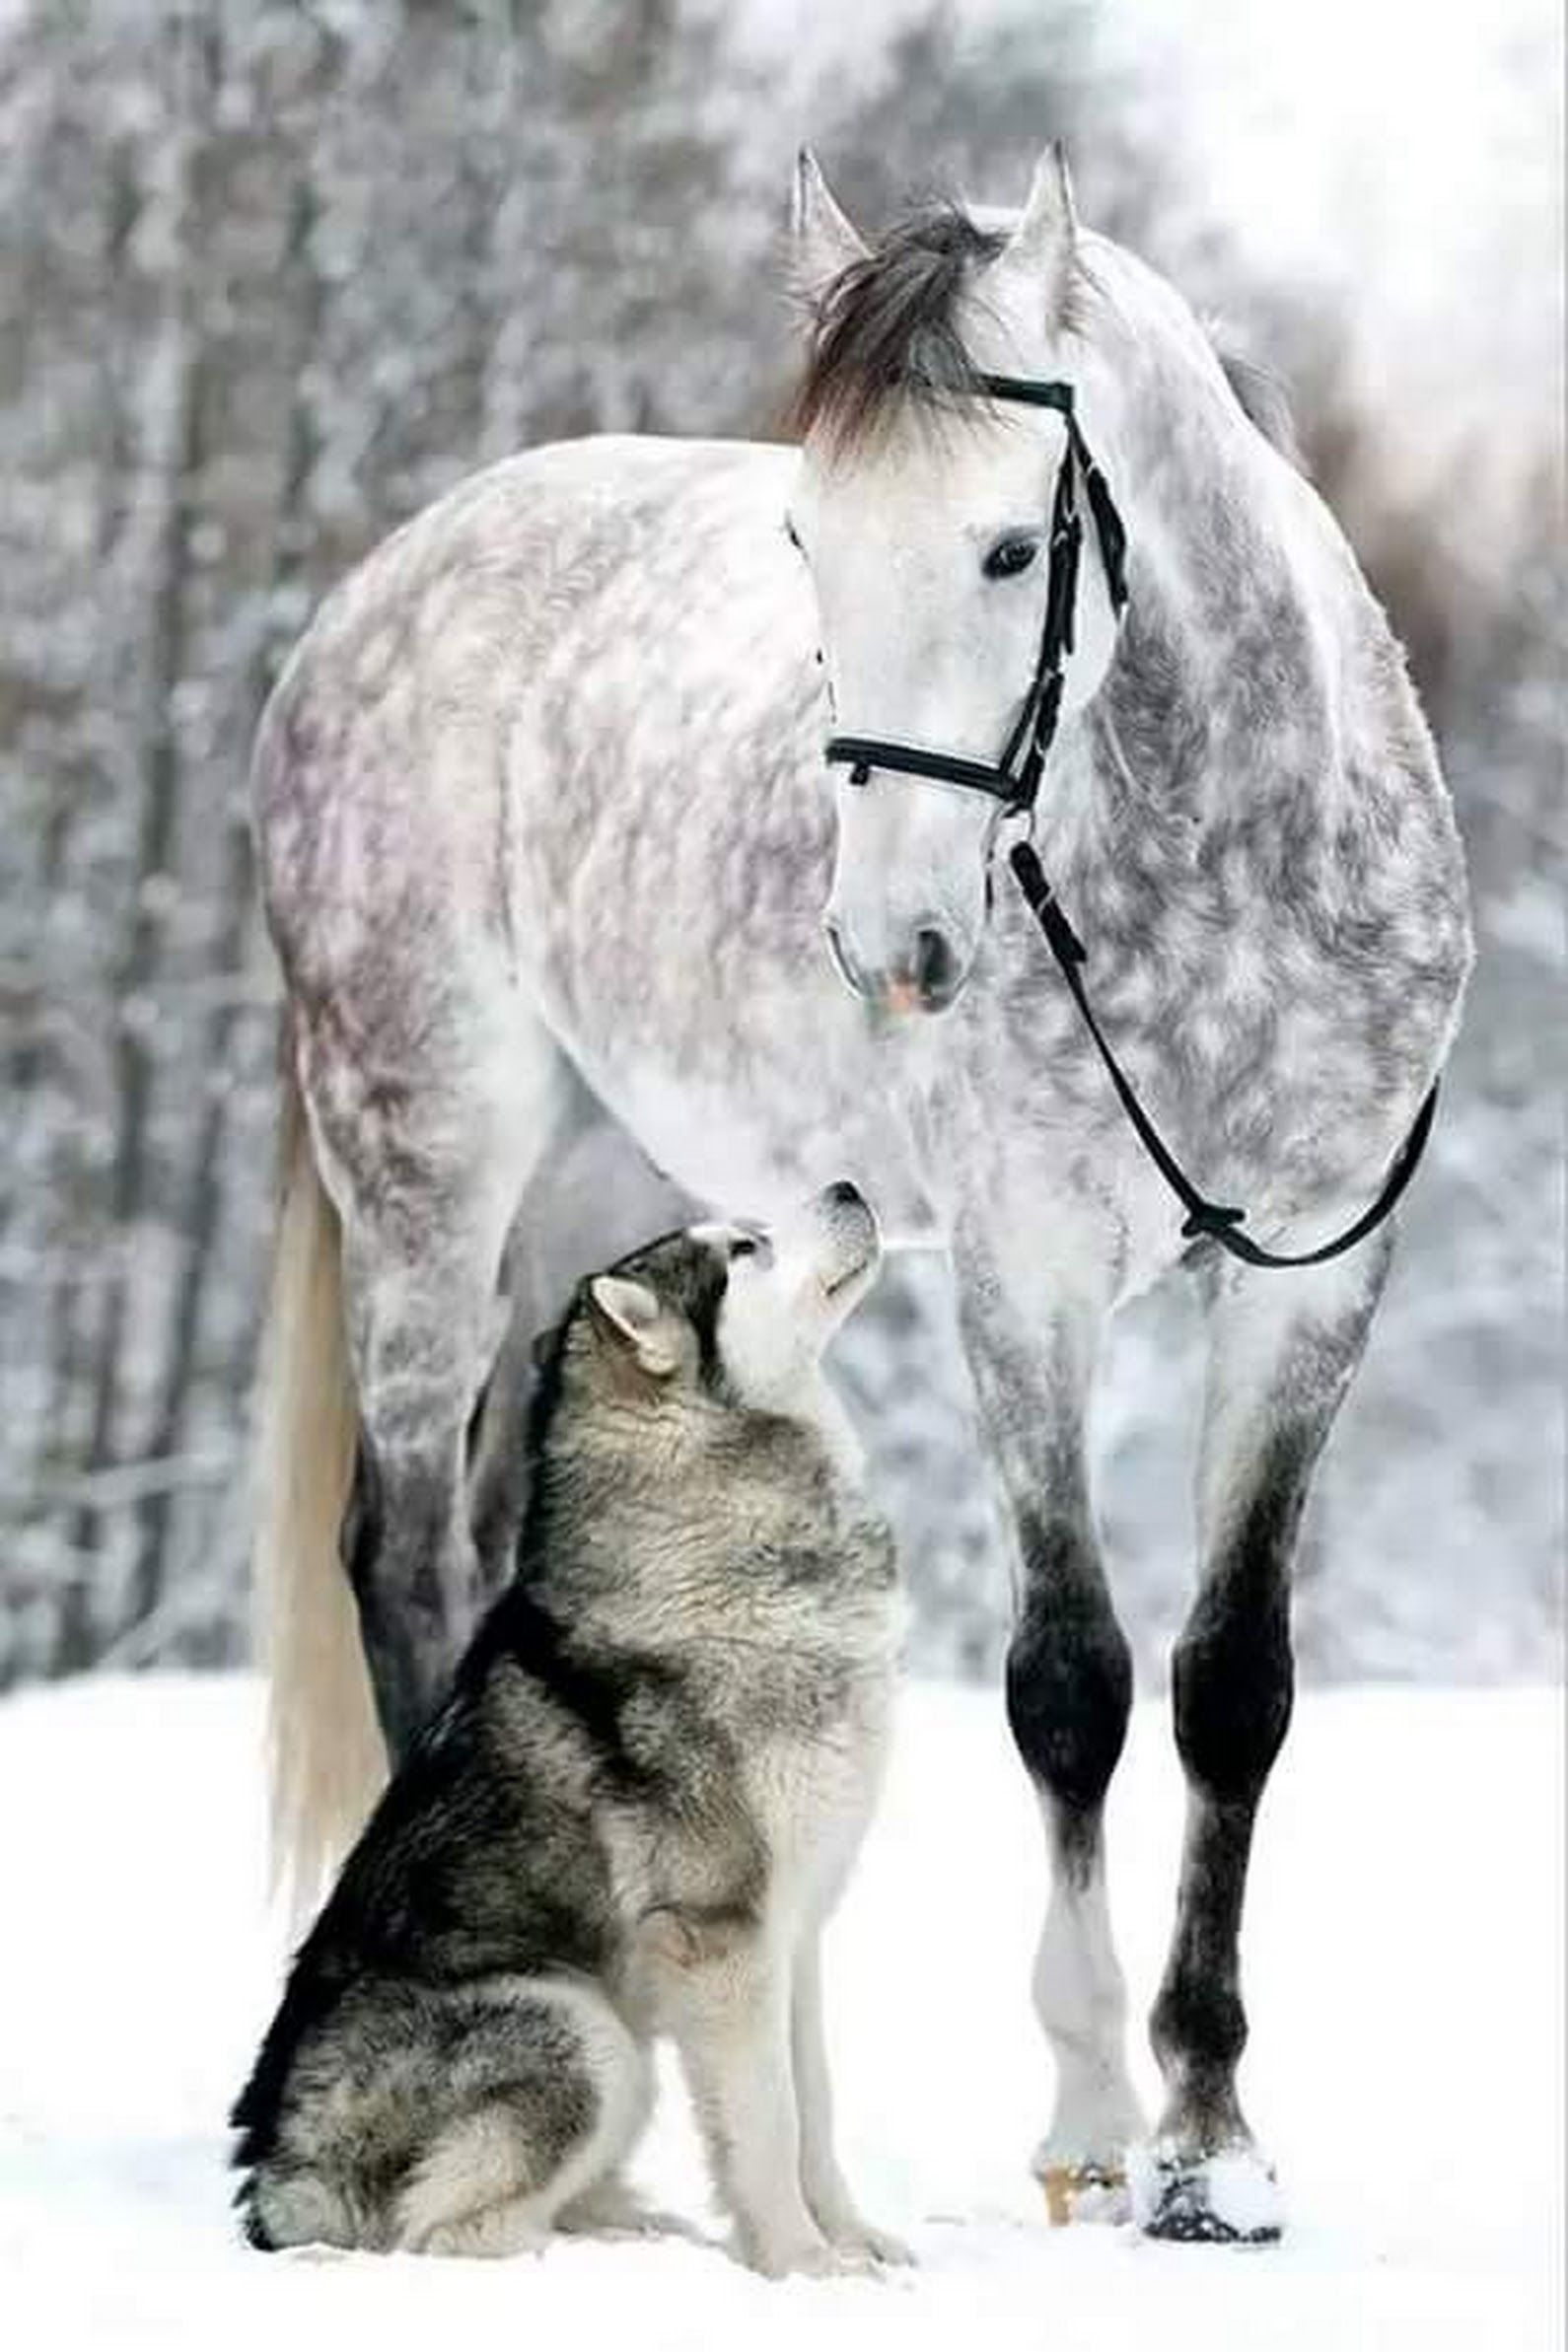 Dapple Grey Horse And Husky Dog In The Snow Just Beautiful